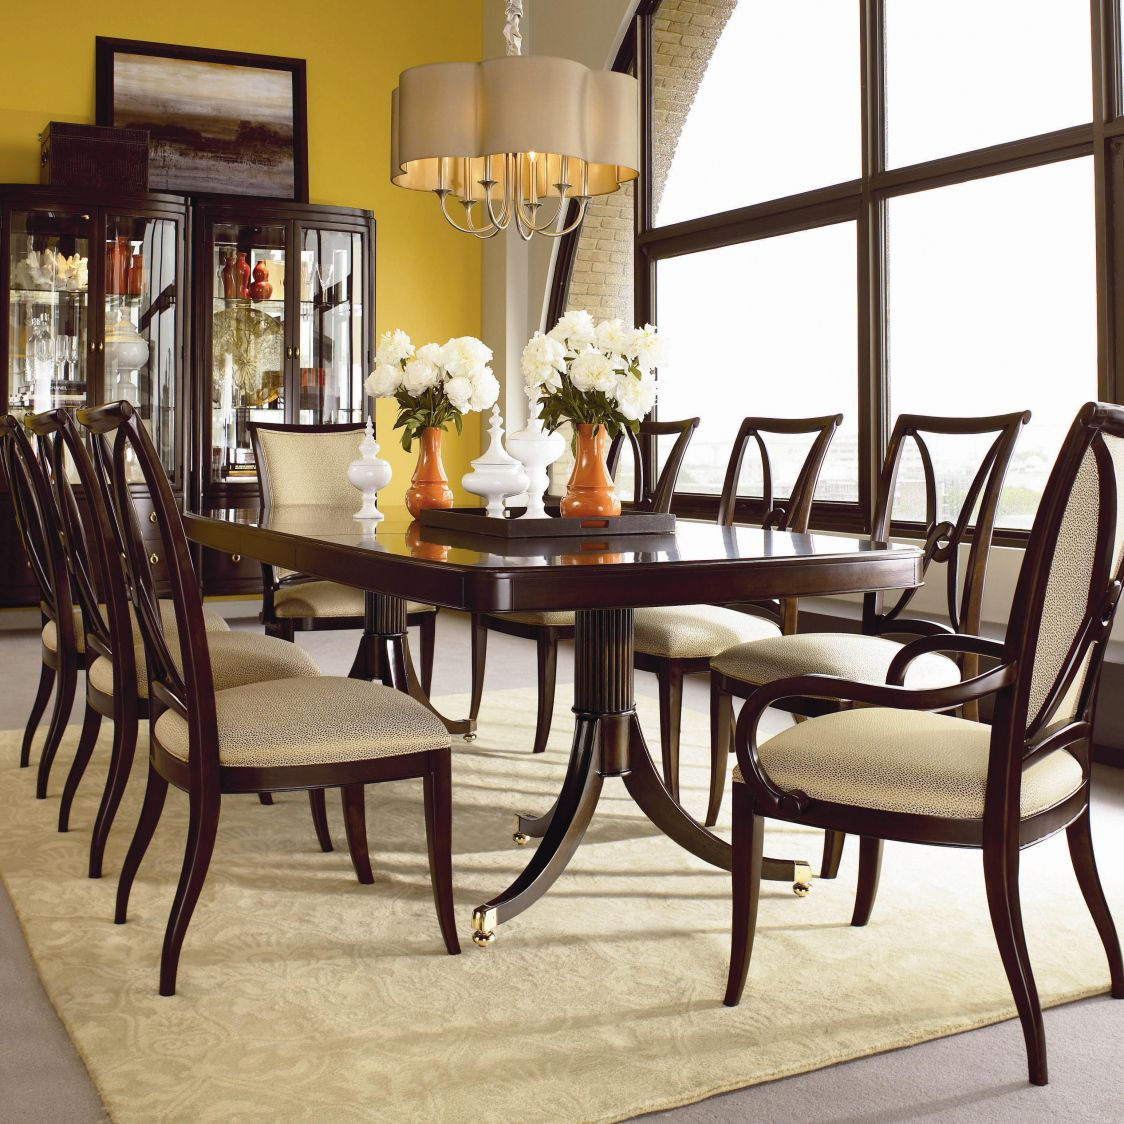 Thomasville Dining Room Sets Discontinued   Cool Furniture Ideas Check More  At Http://